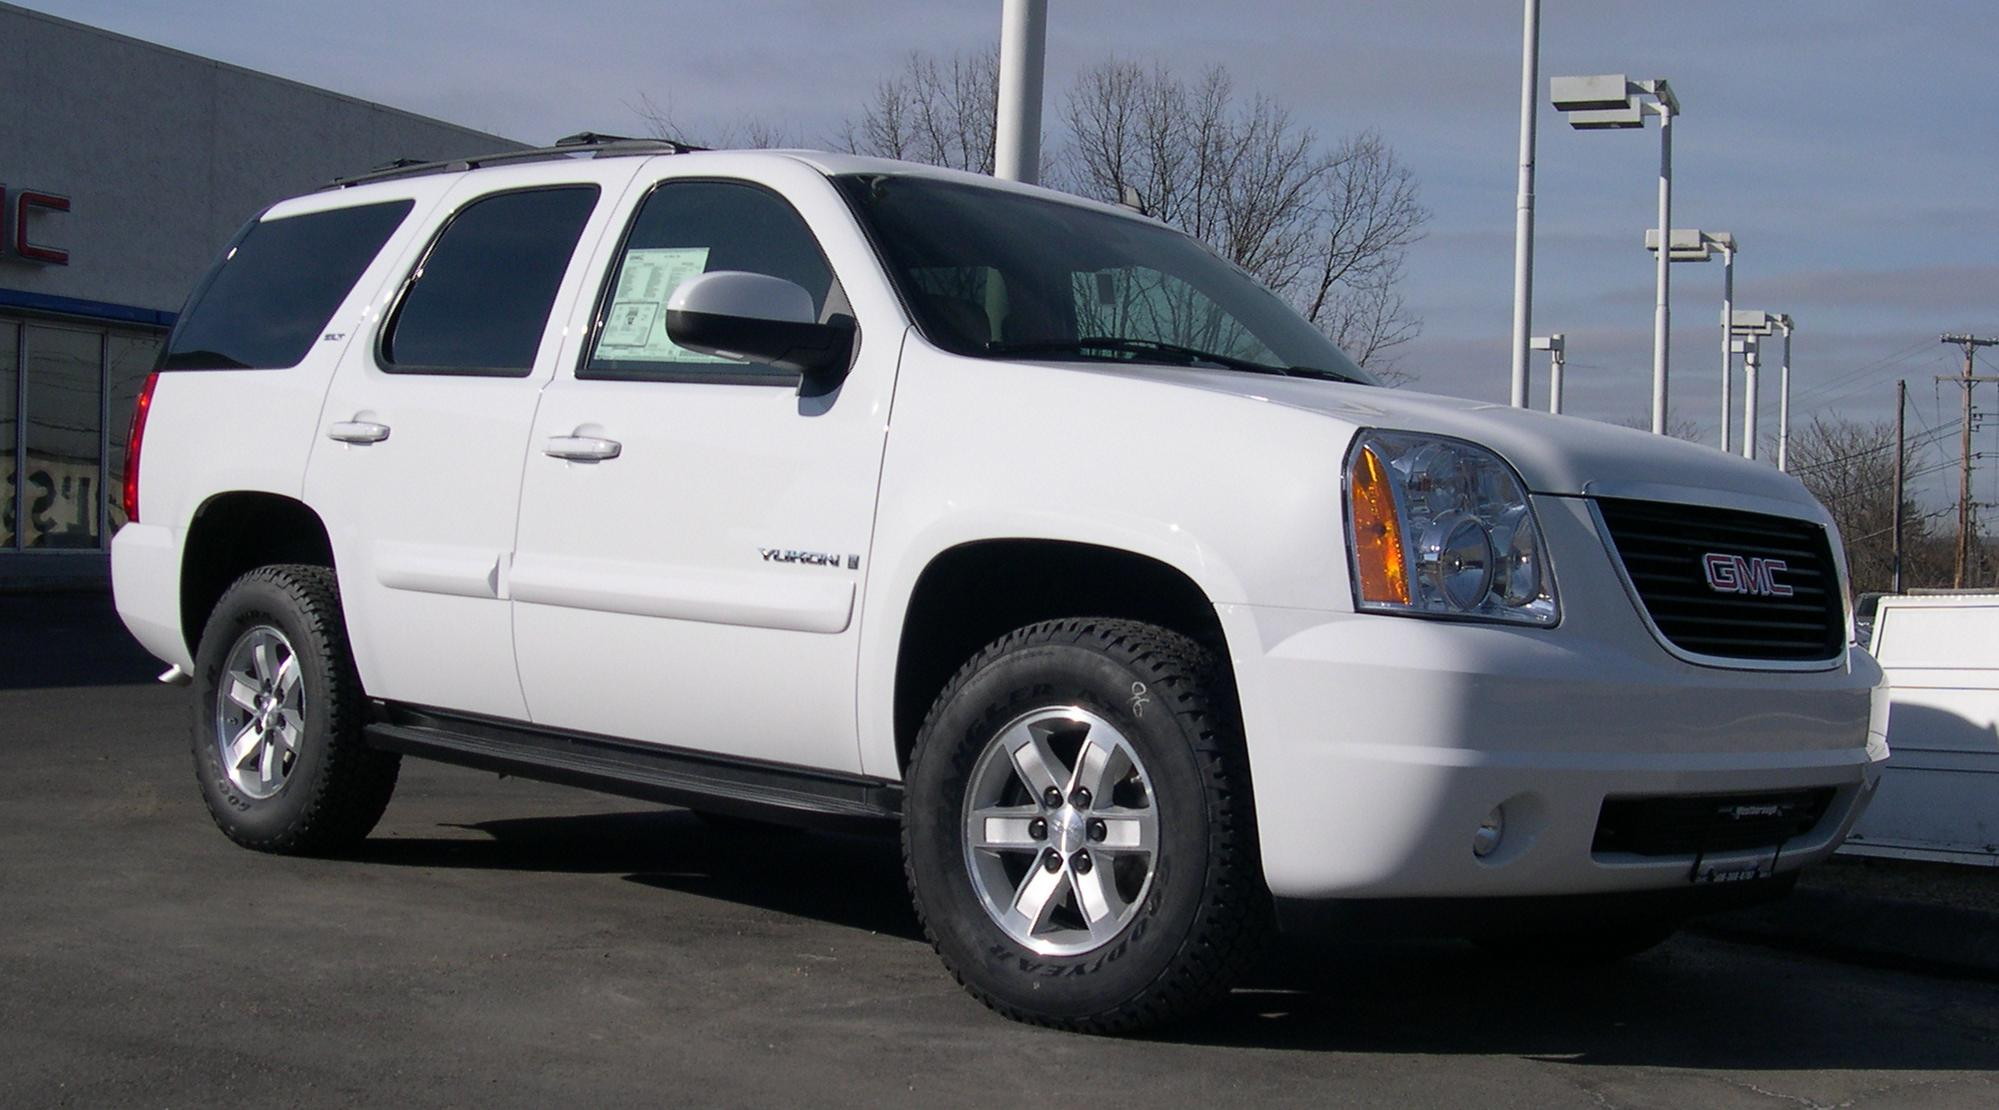 File:2007 GMC Yukon.jpg - Wikimedia Commons